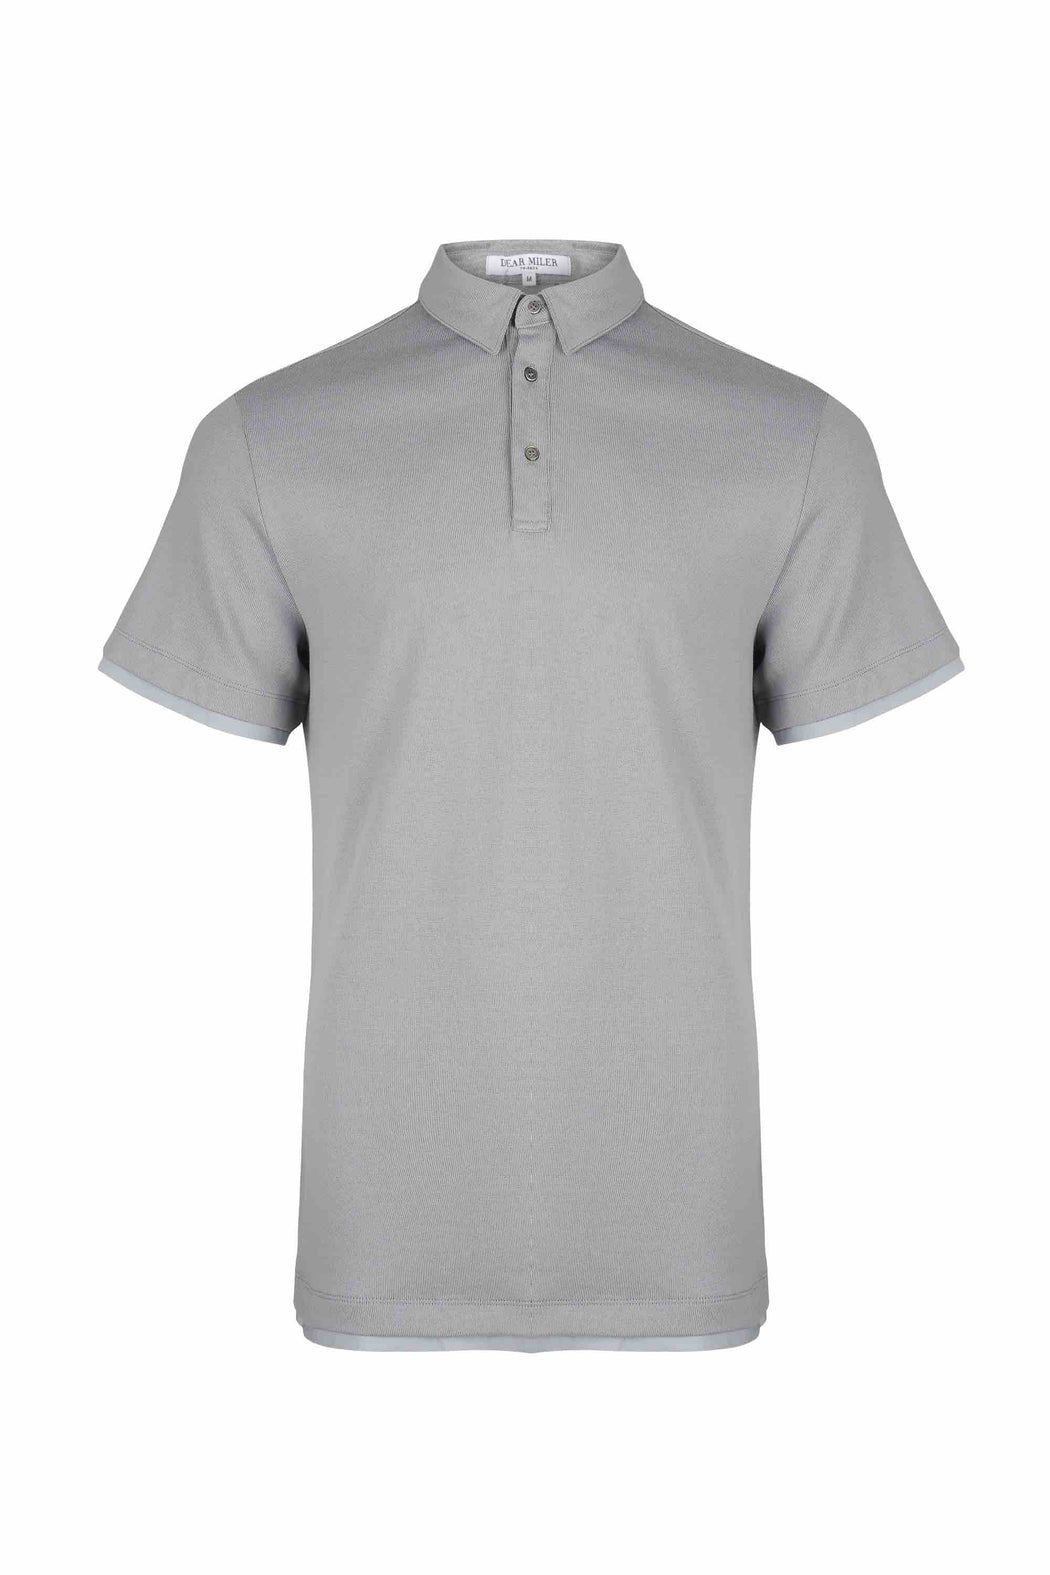 Front view of Men Contrast Polo Shirt, made with Organic Cotton in Grey